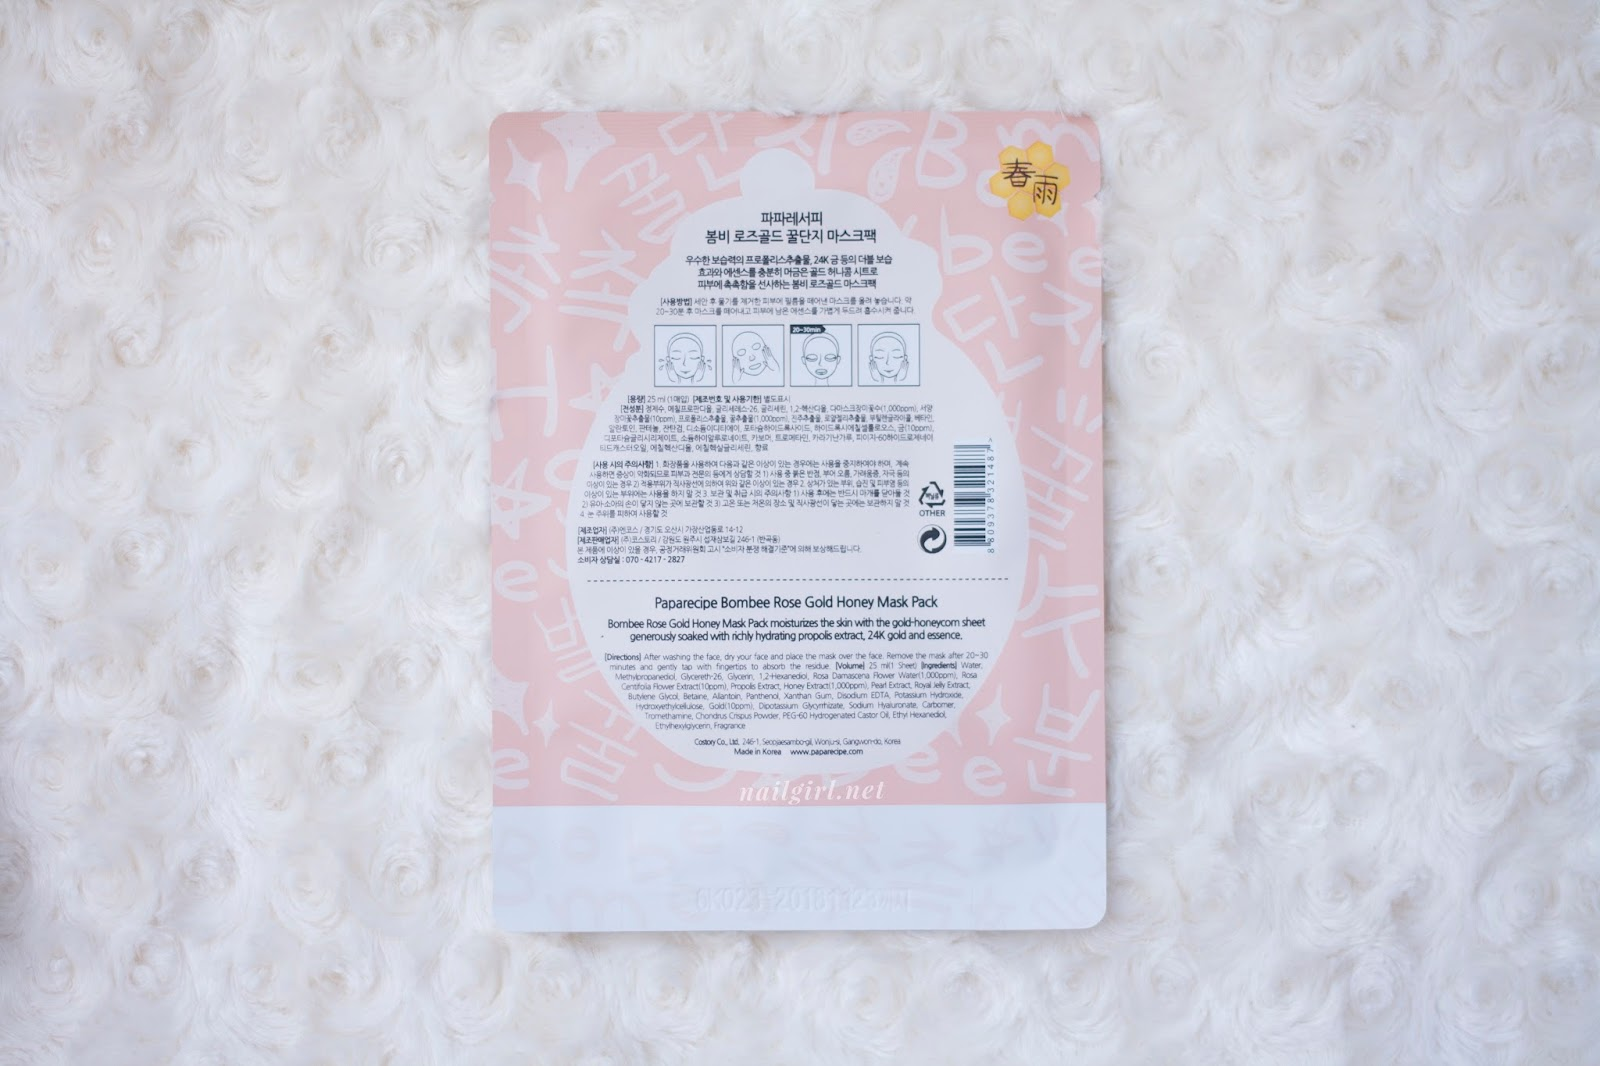 papa recipe rose gold honey mask review ingredients packaging